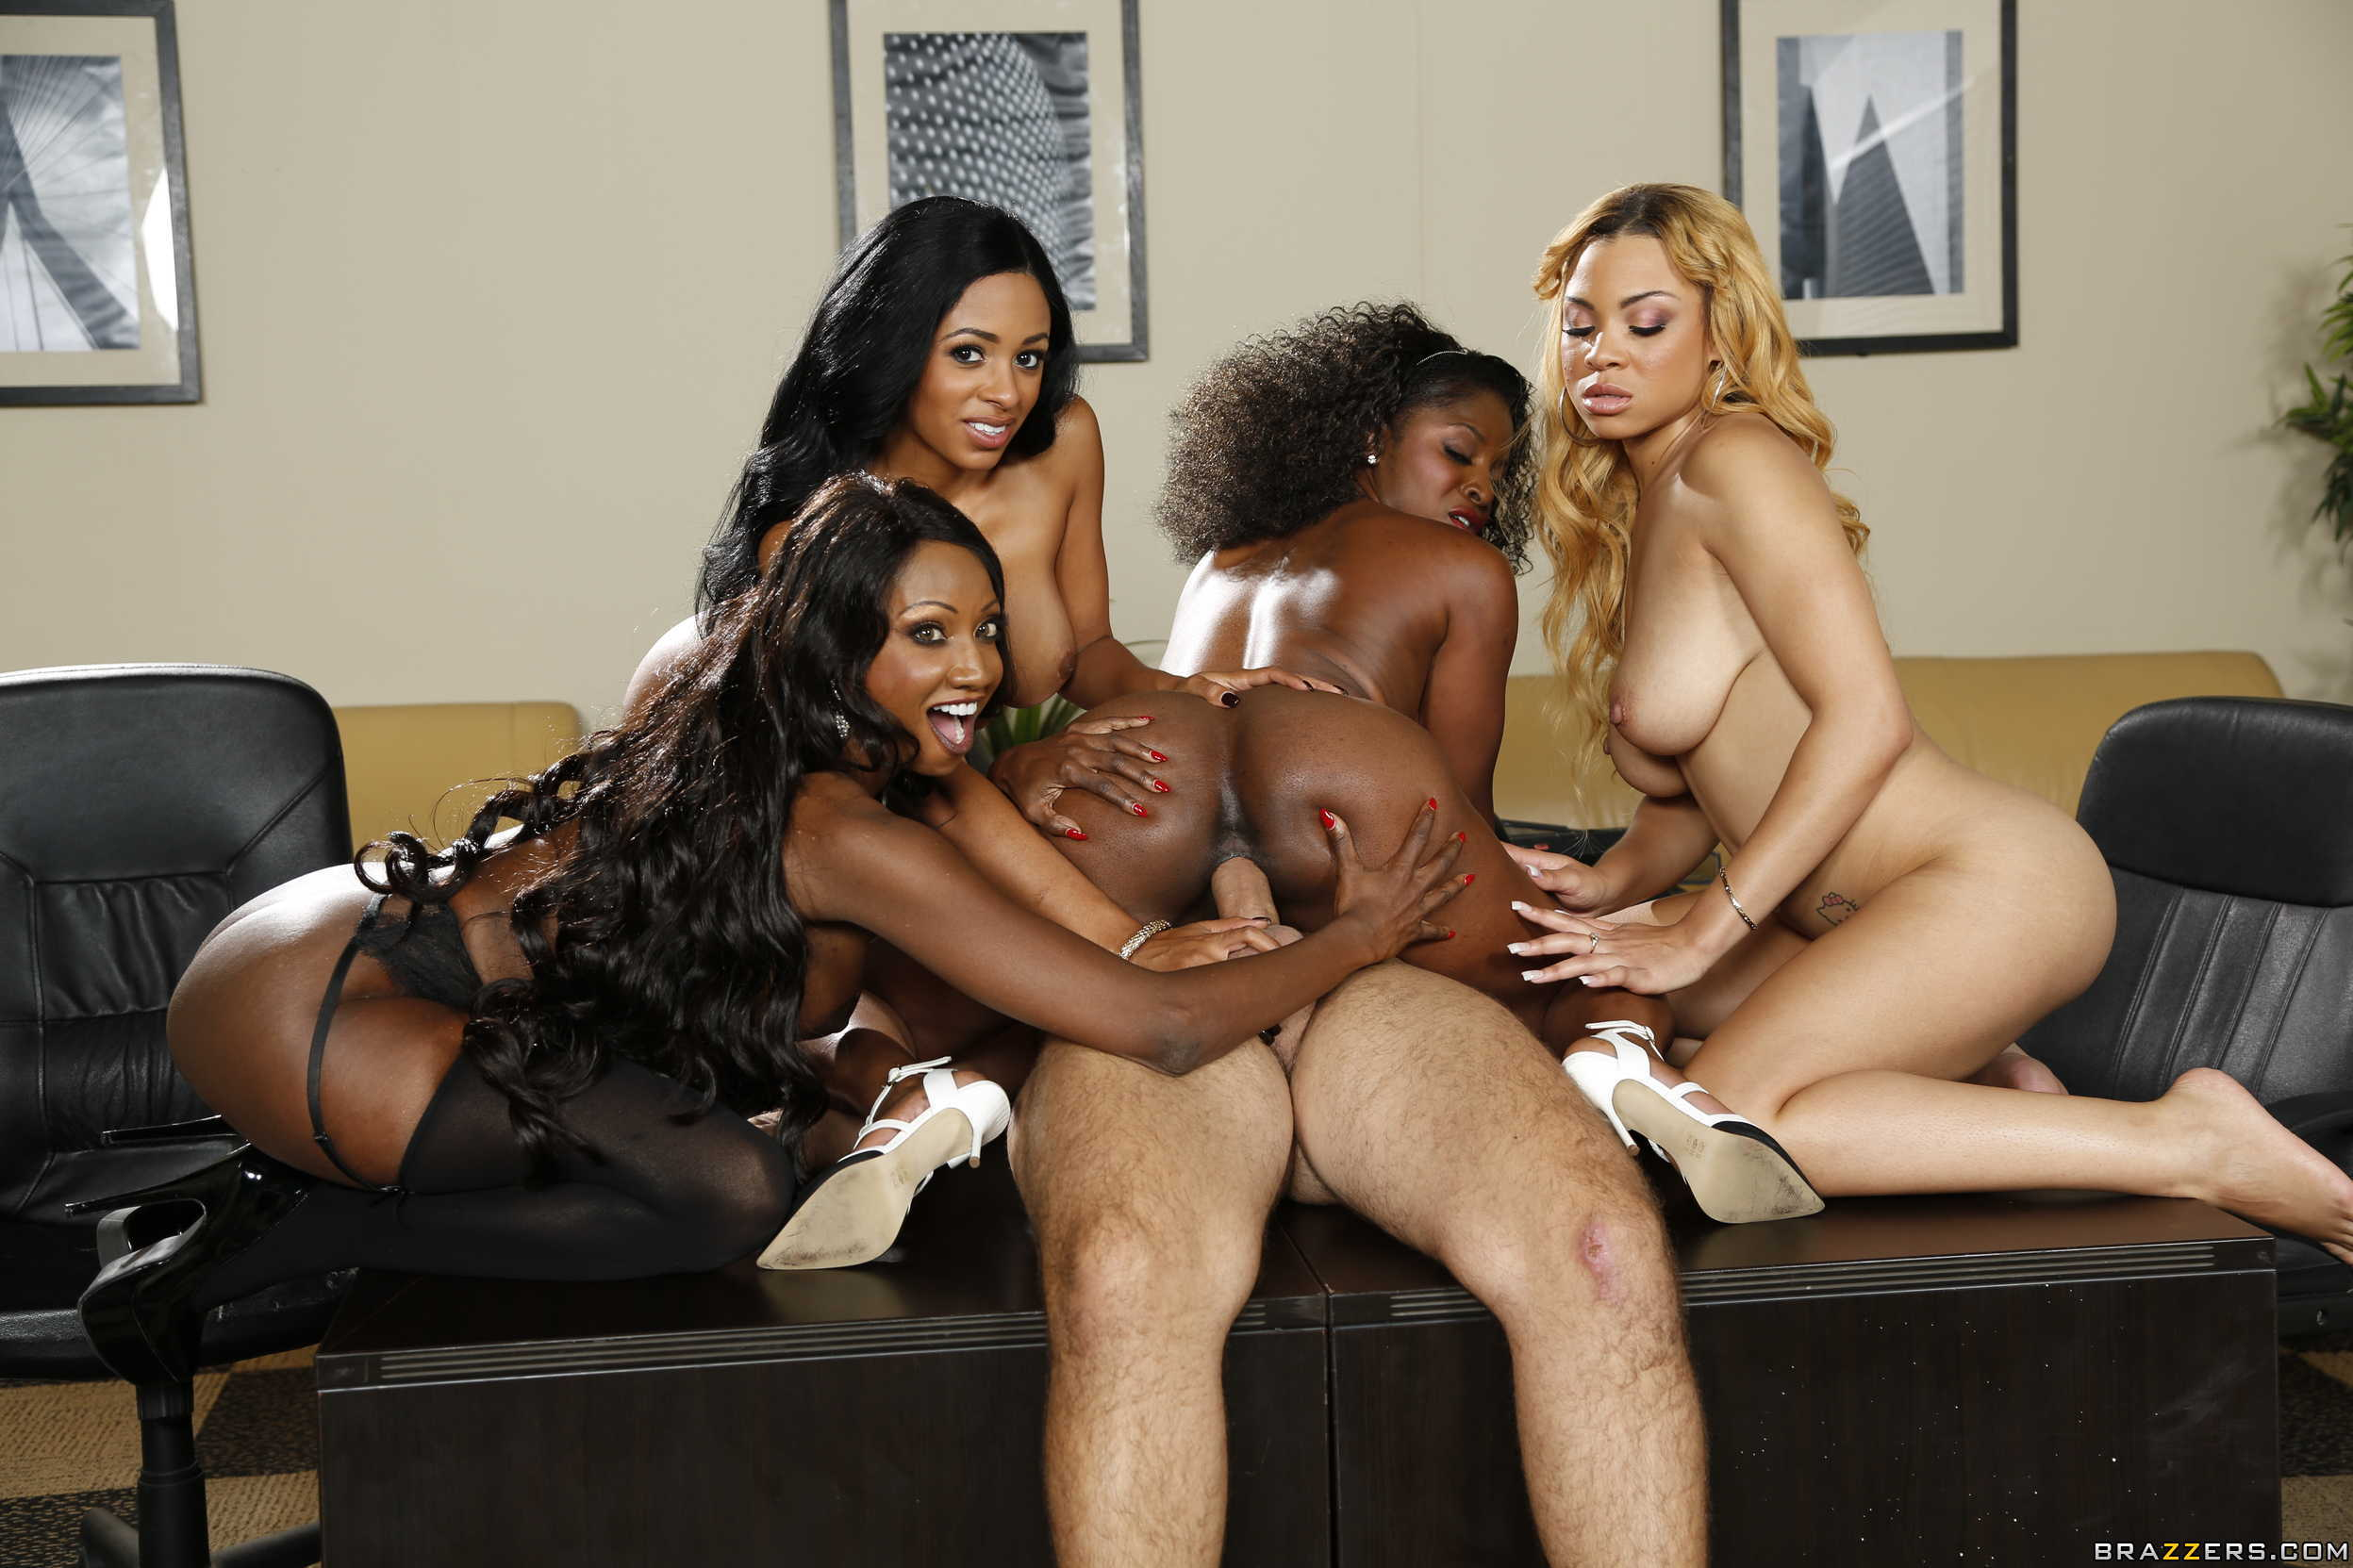 4 Play Porn - Anya Ivy, Diamond Jackson, Jade Aspen and Jasmine Webb in Office 4-Play  VII: Ebony Babes